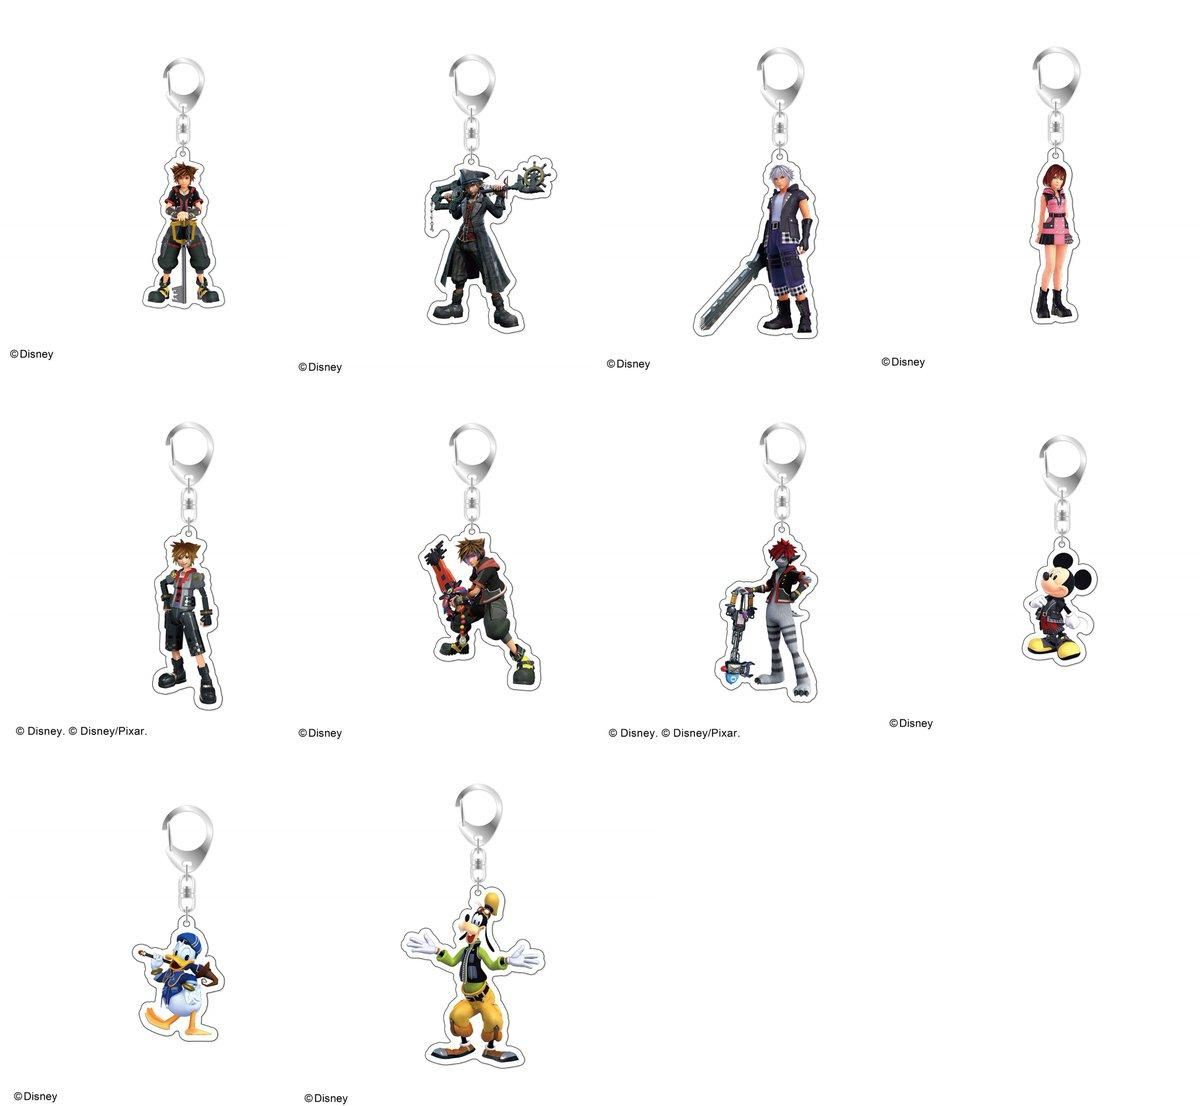 Kingdom Hearts III Sora Acrylic Key Holder